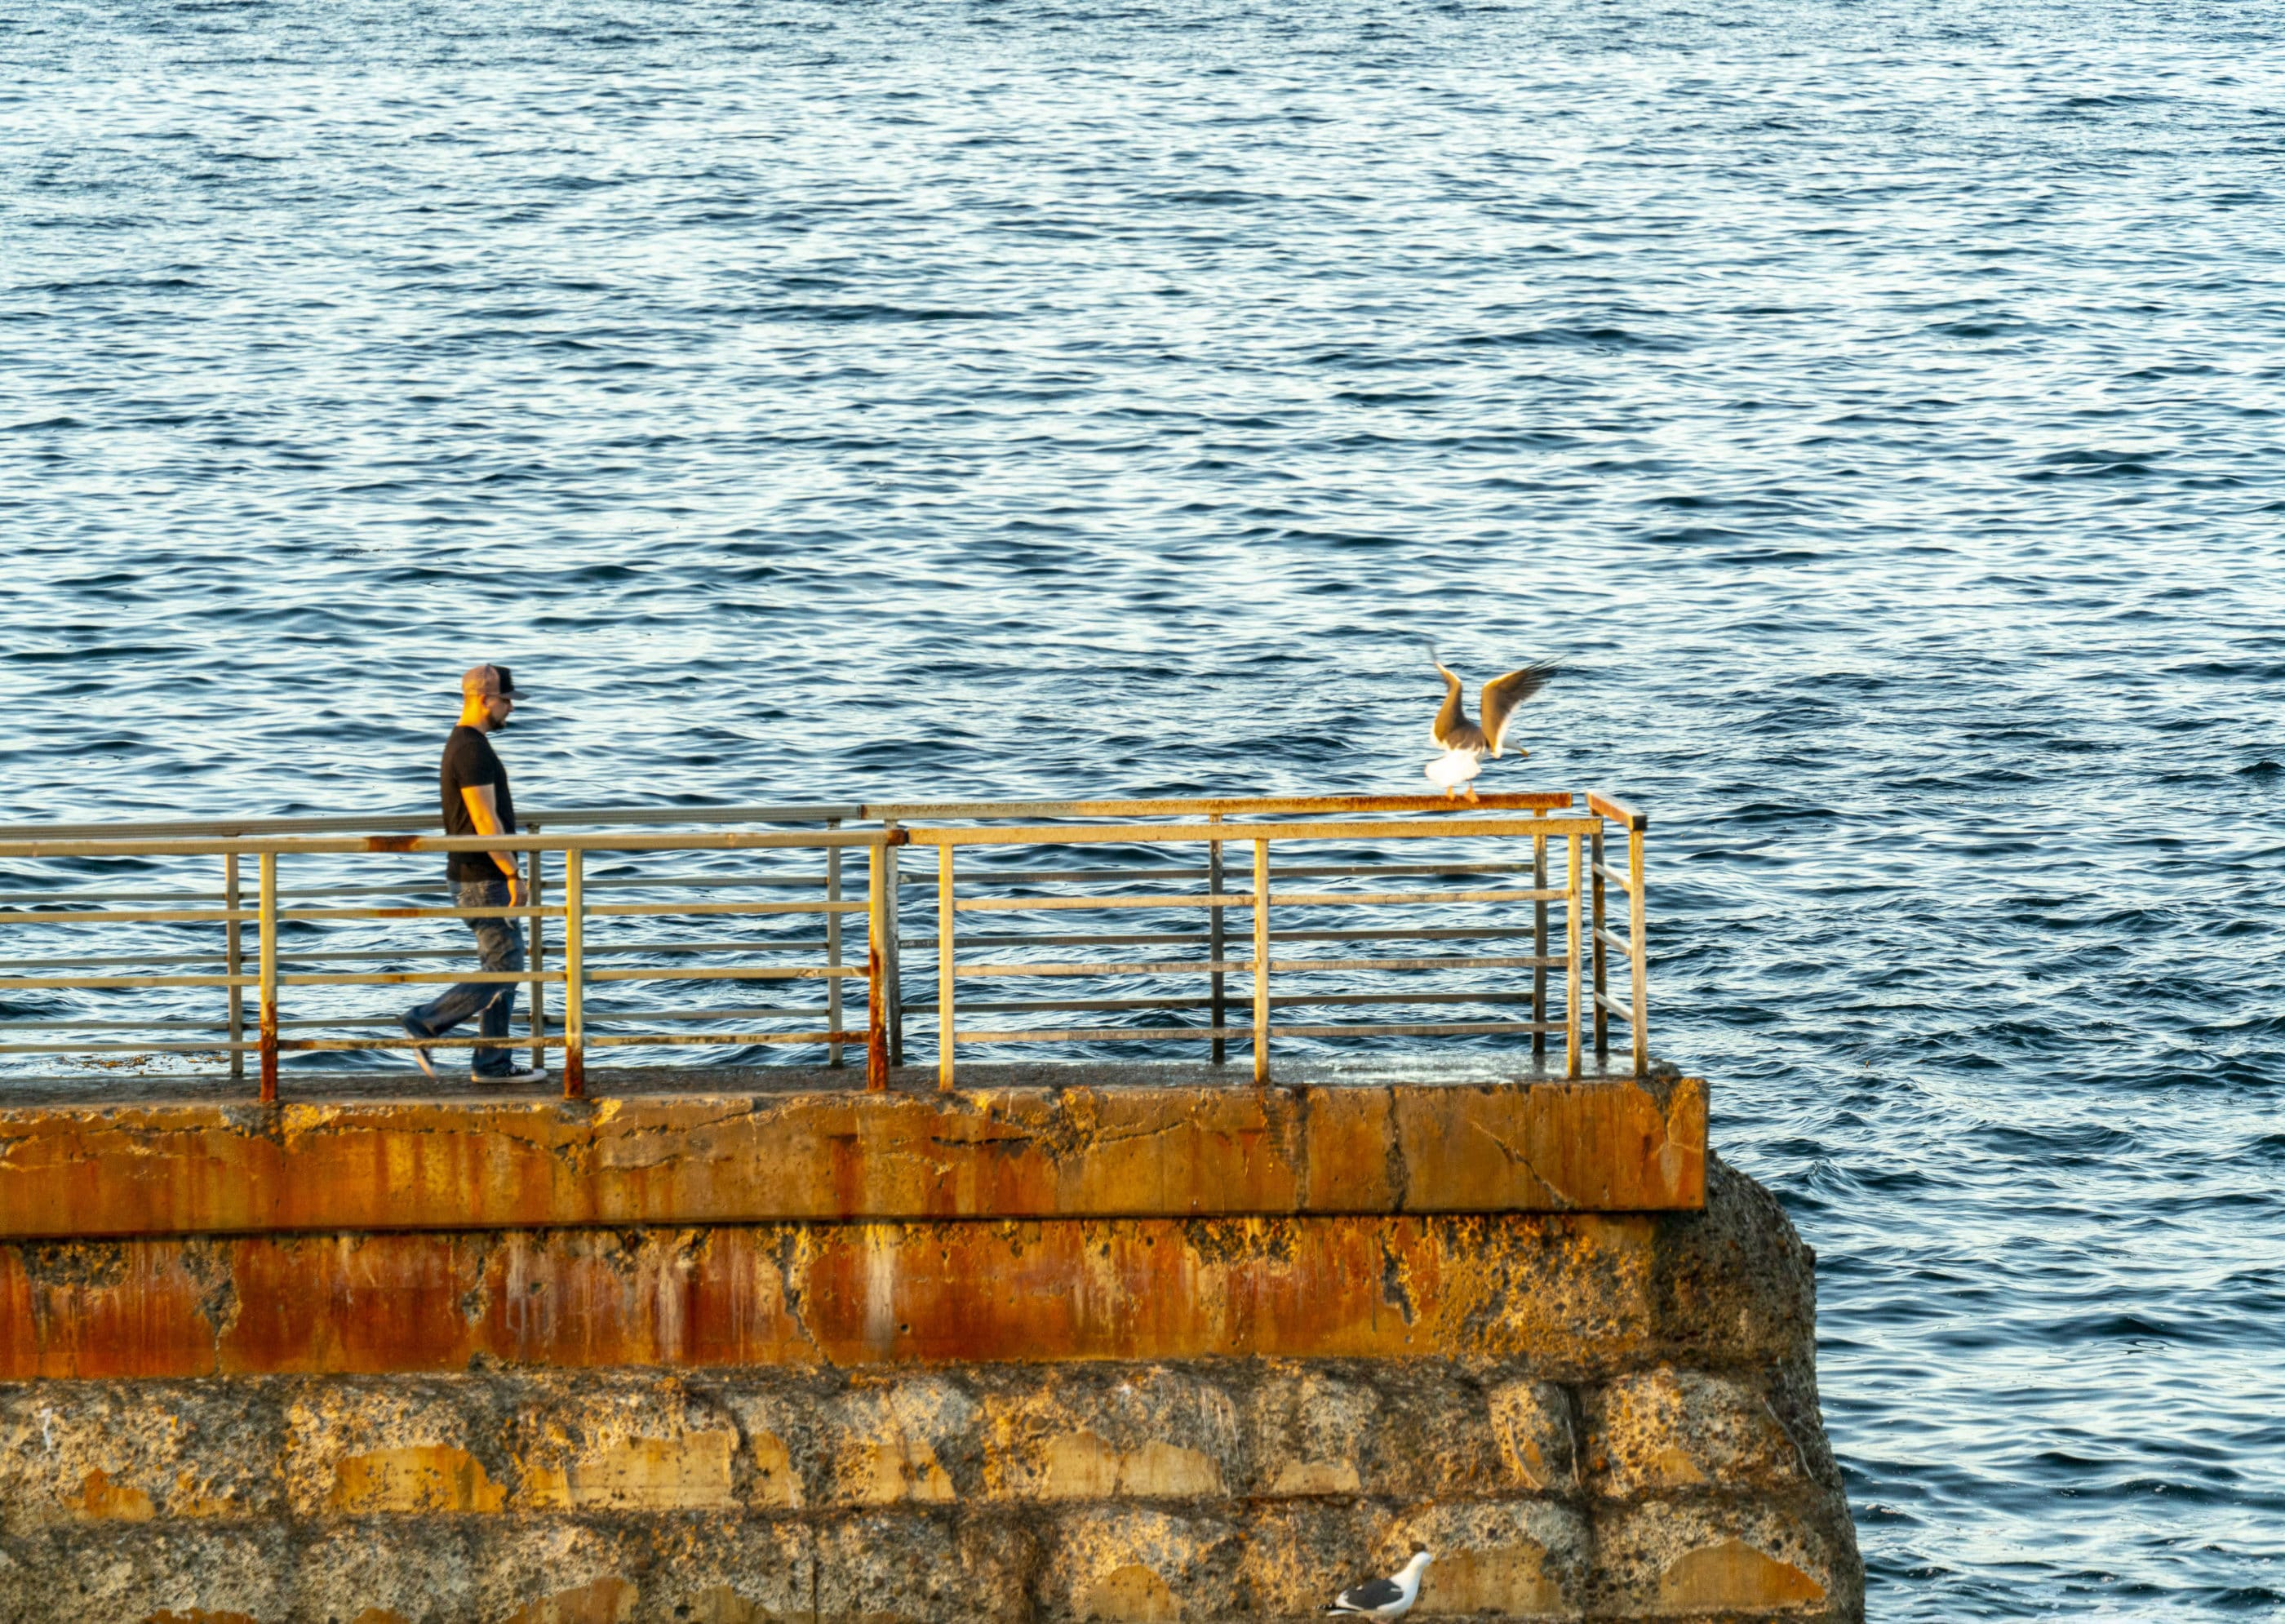 A man walks on the Children's Pool seawall with the ocean in the background.